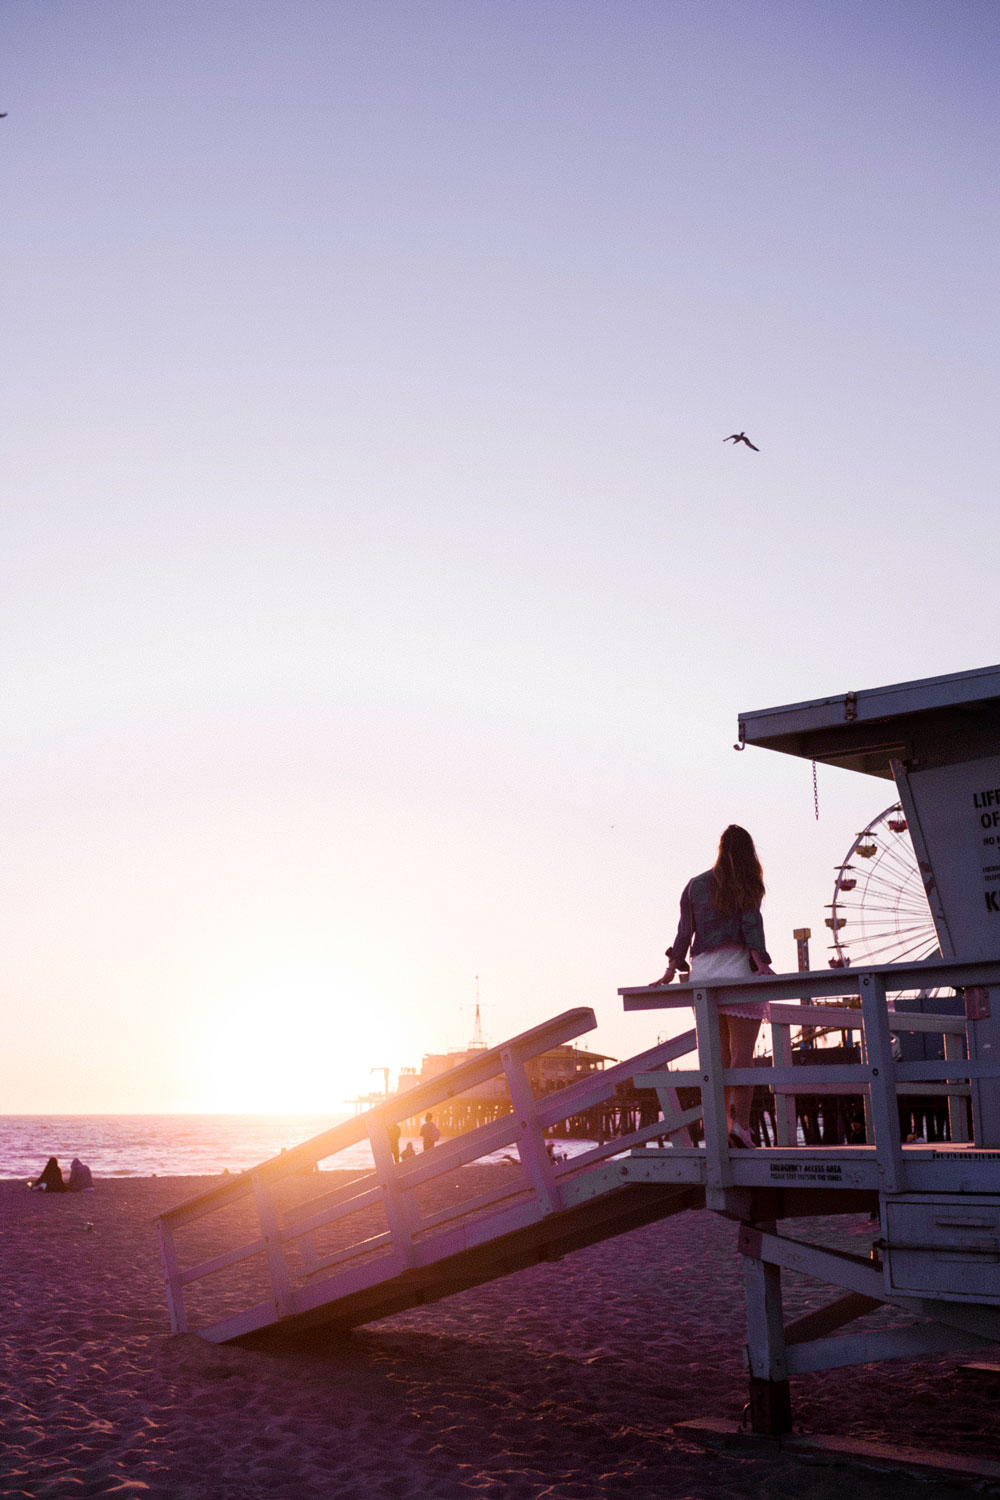 santa monica lifeguard stands by To Vogue or Bust